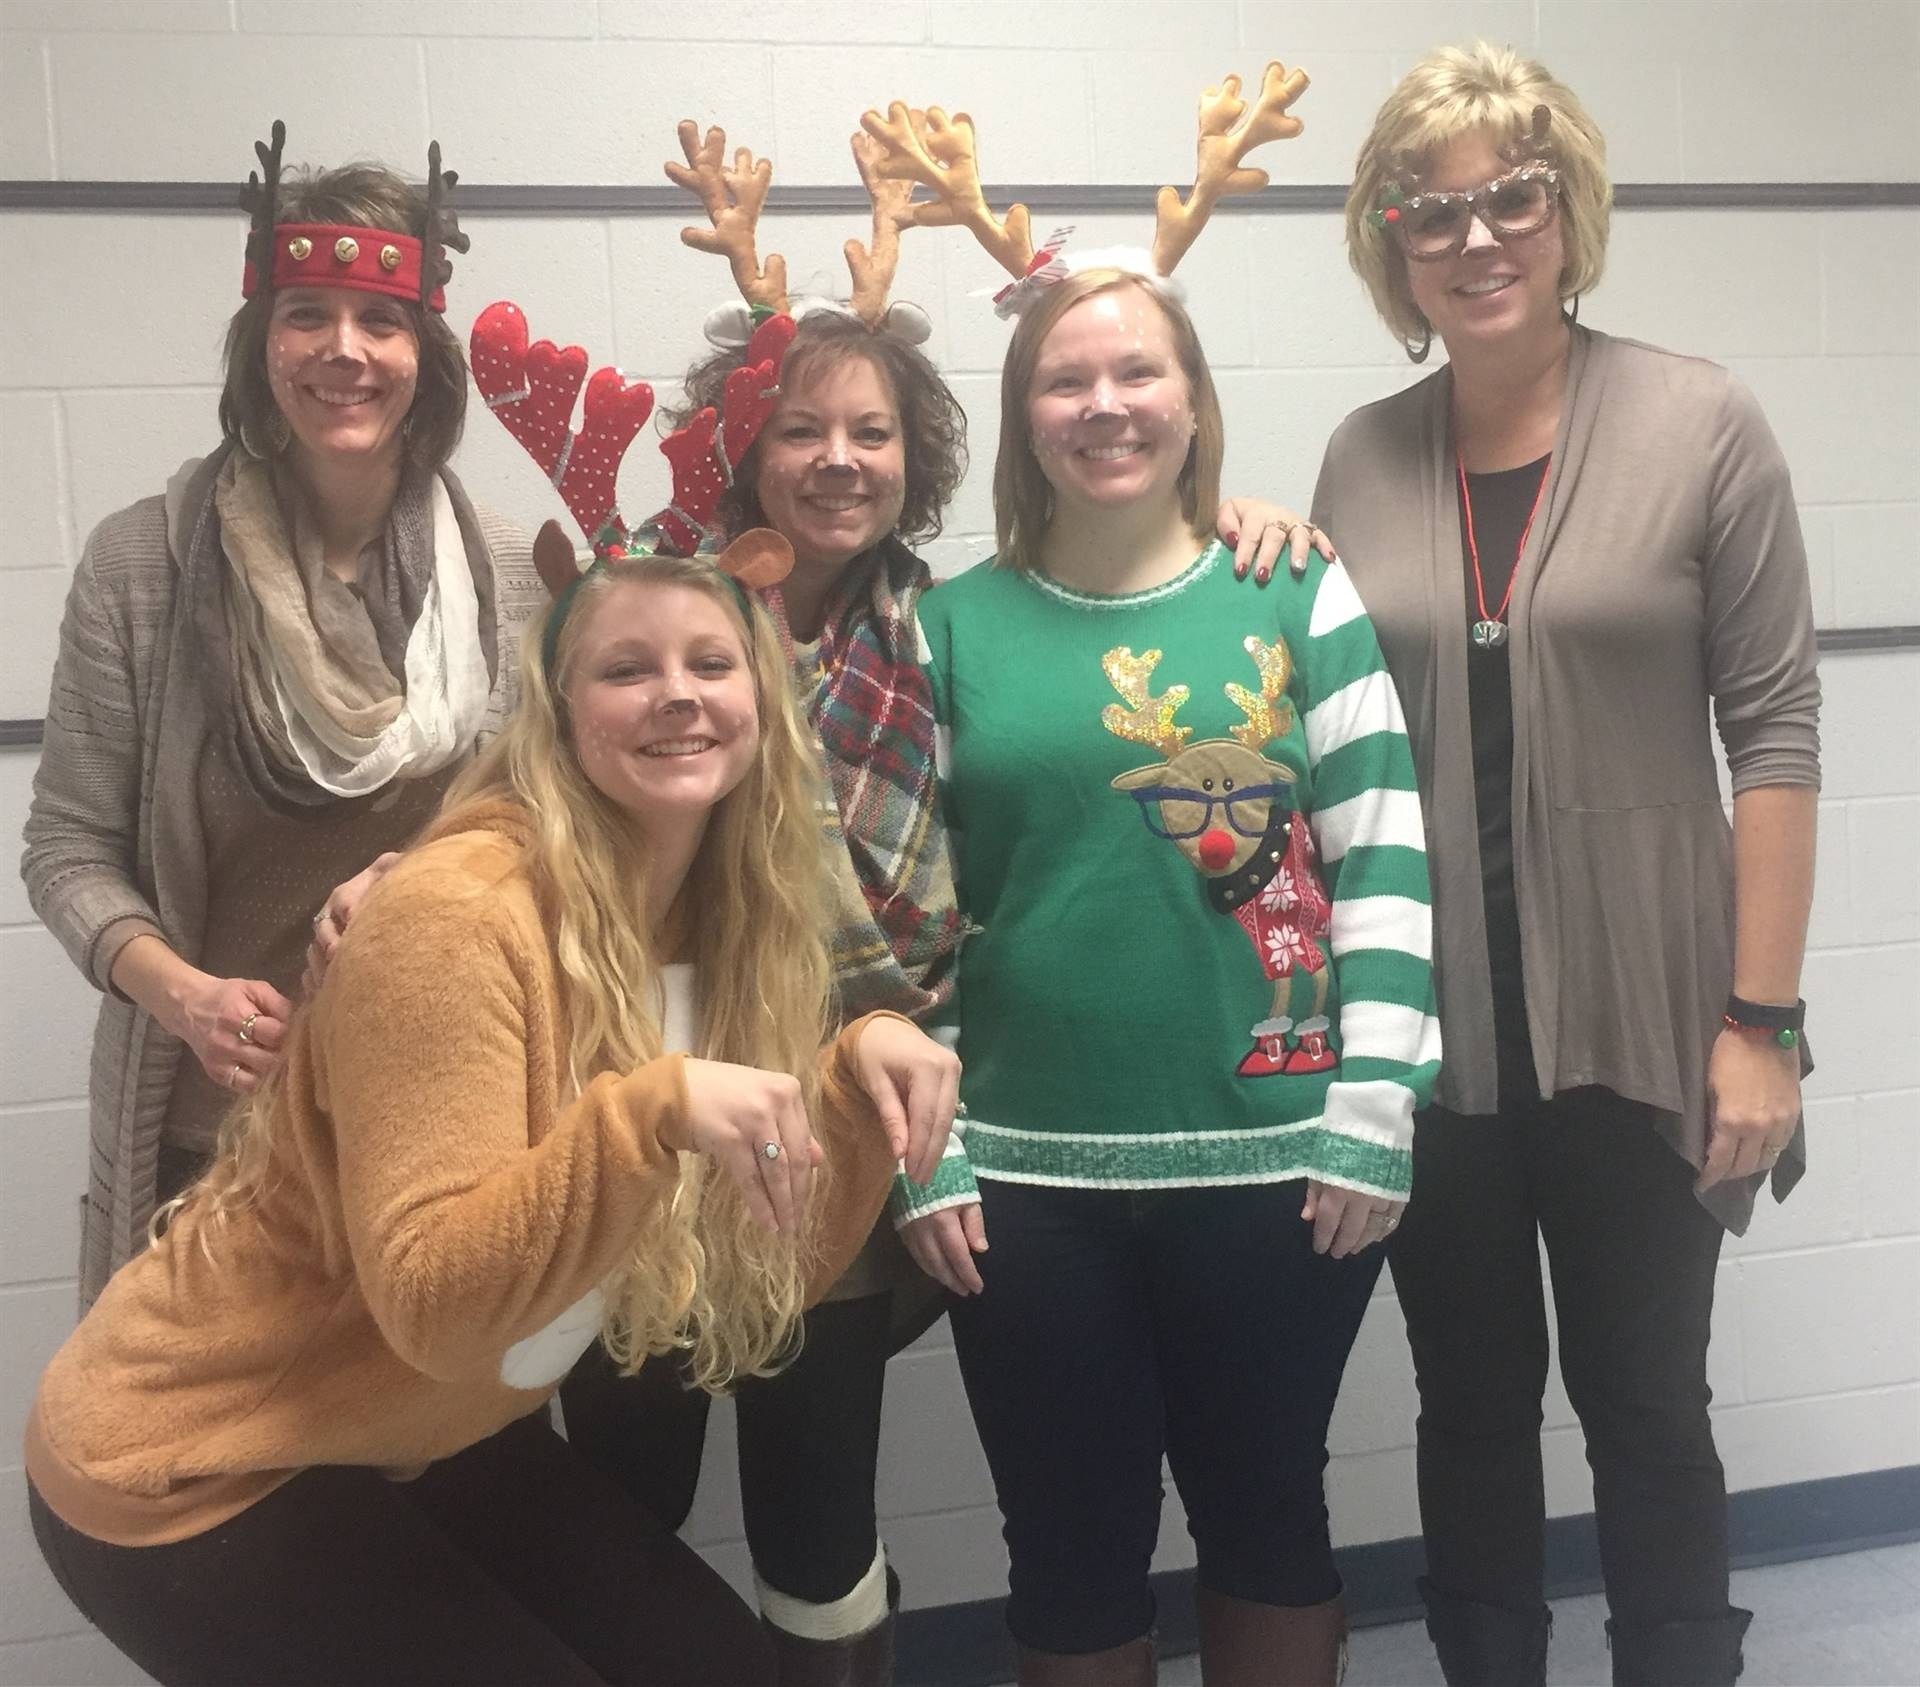 Reindeer spotted in 5th grade hall